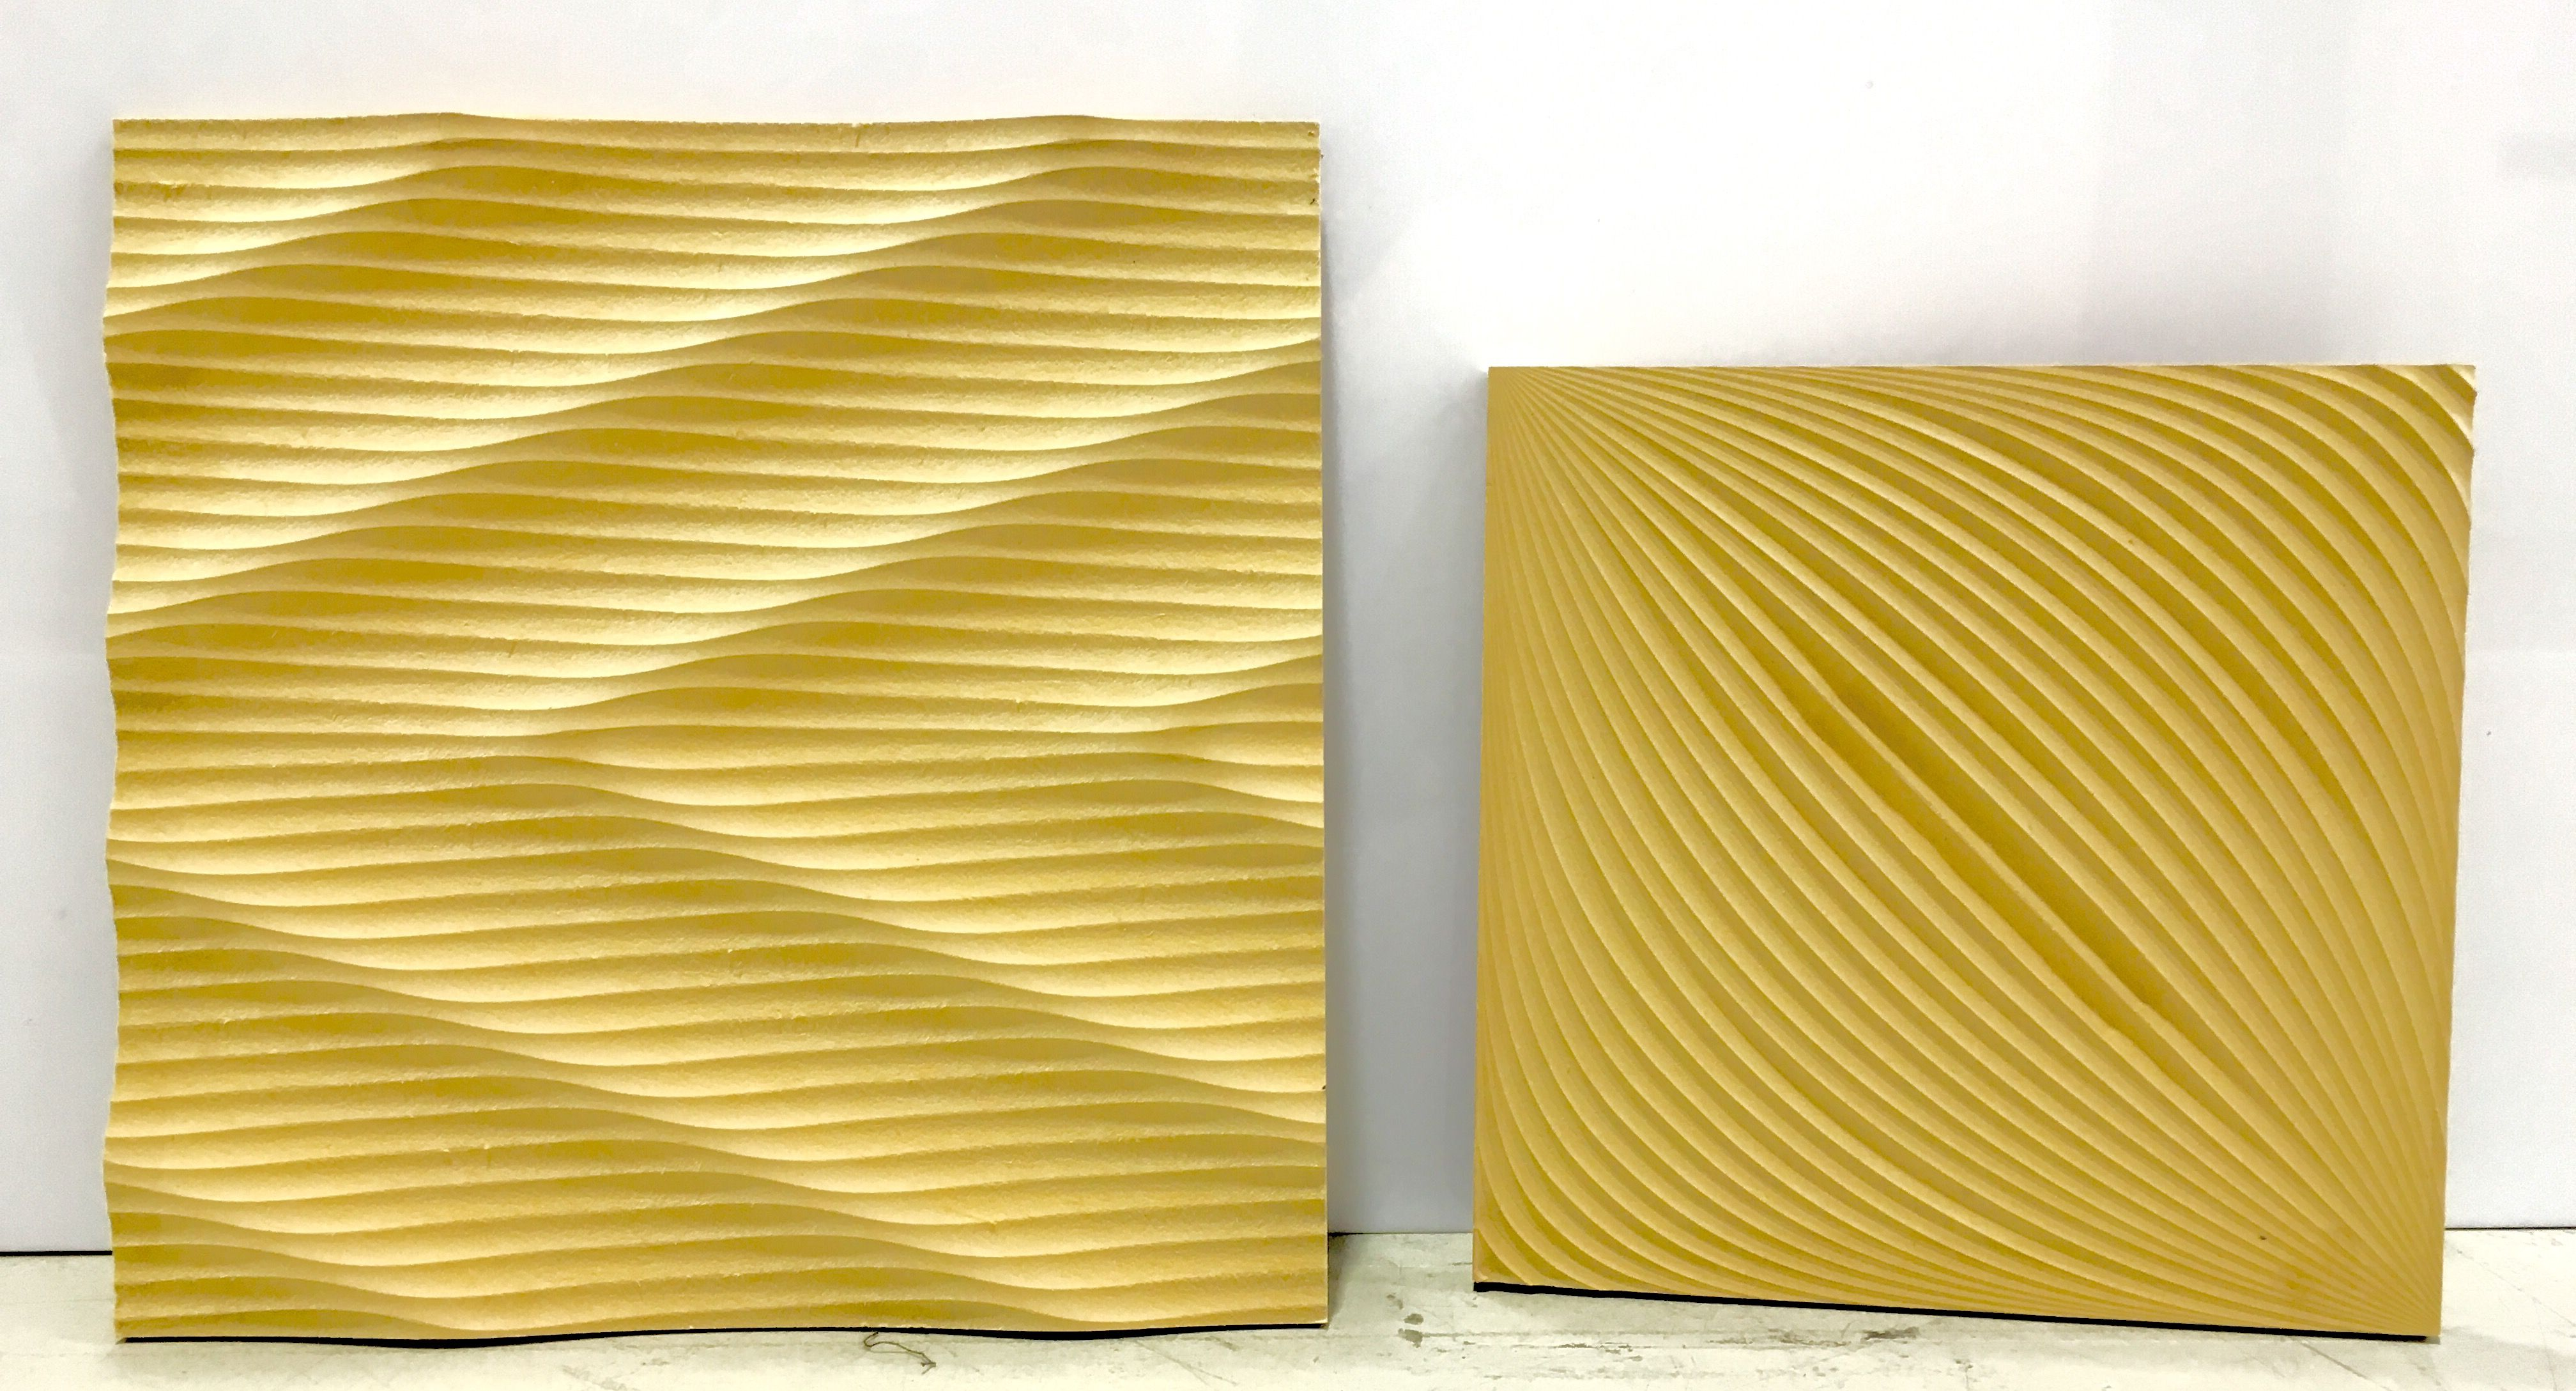 Pin On 3d Wall Panels Intriguing